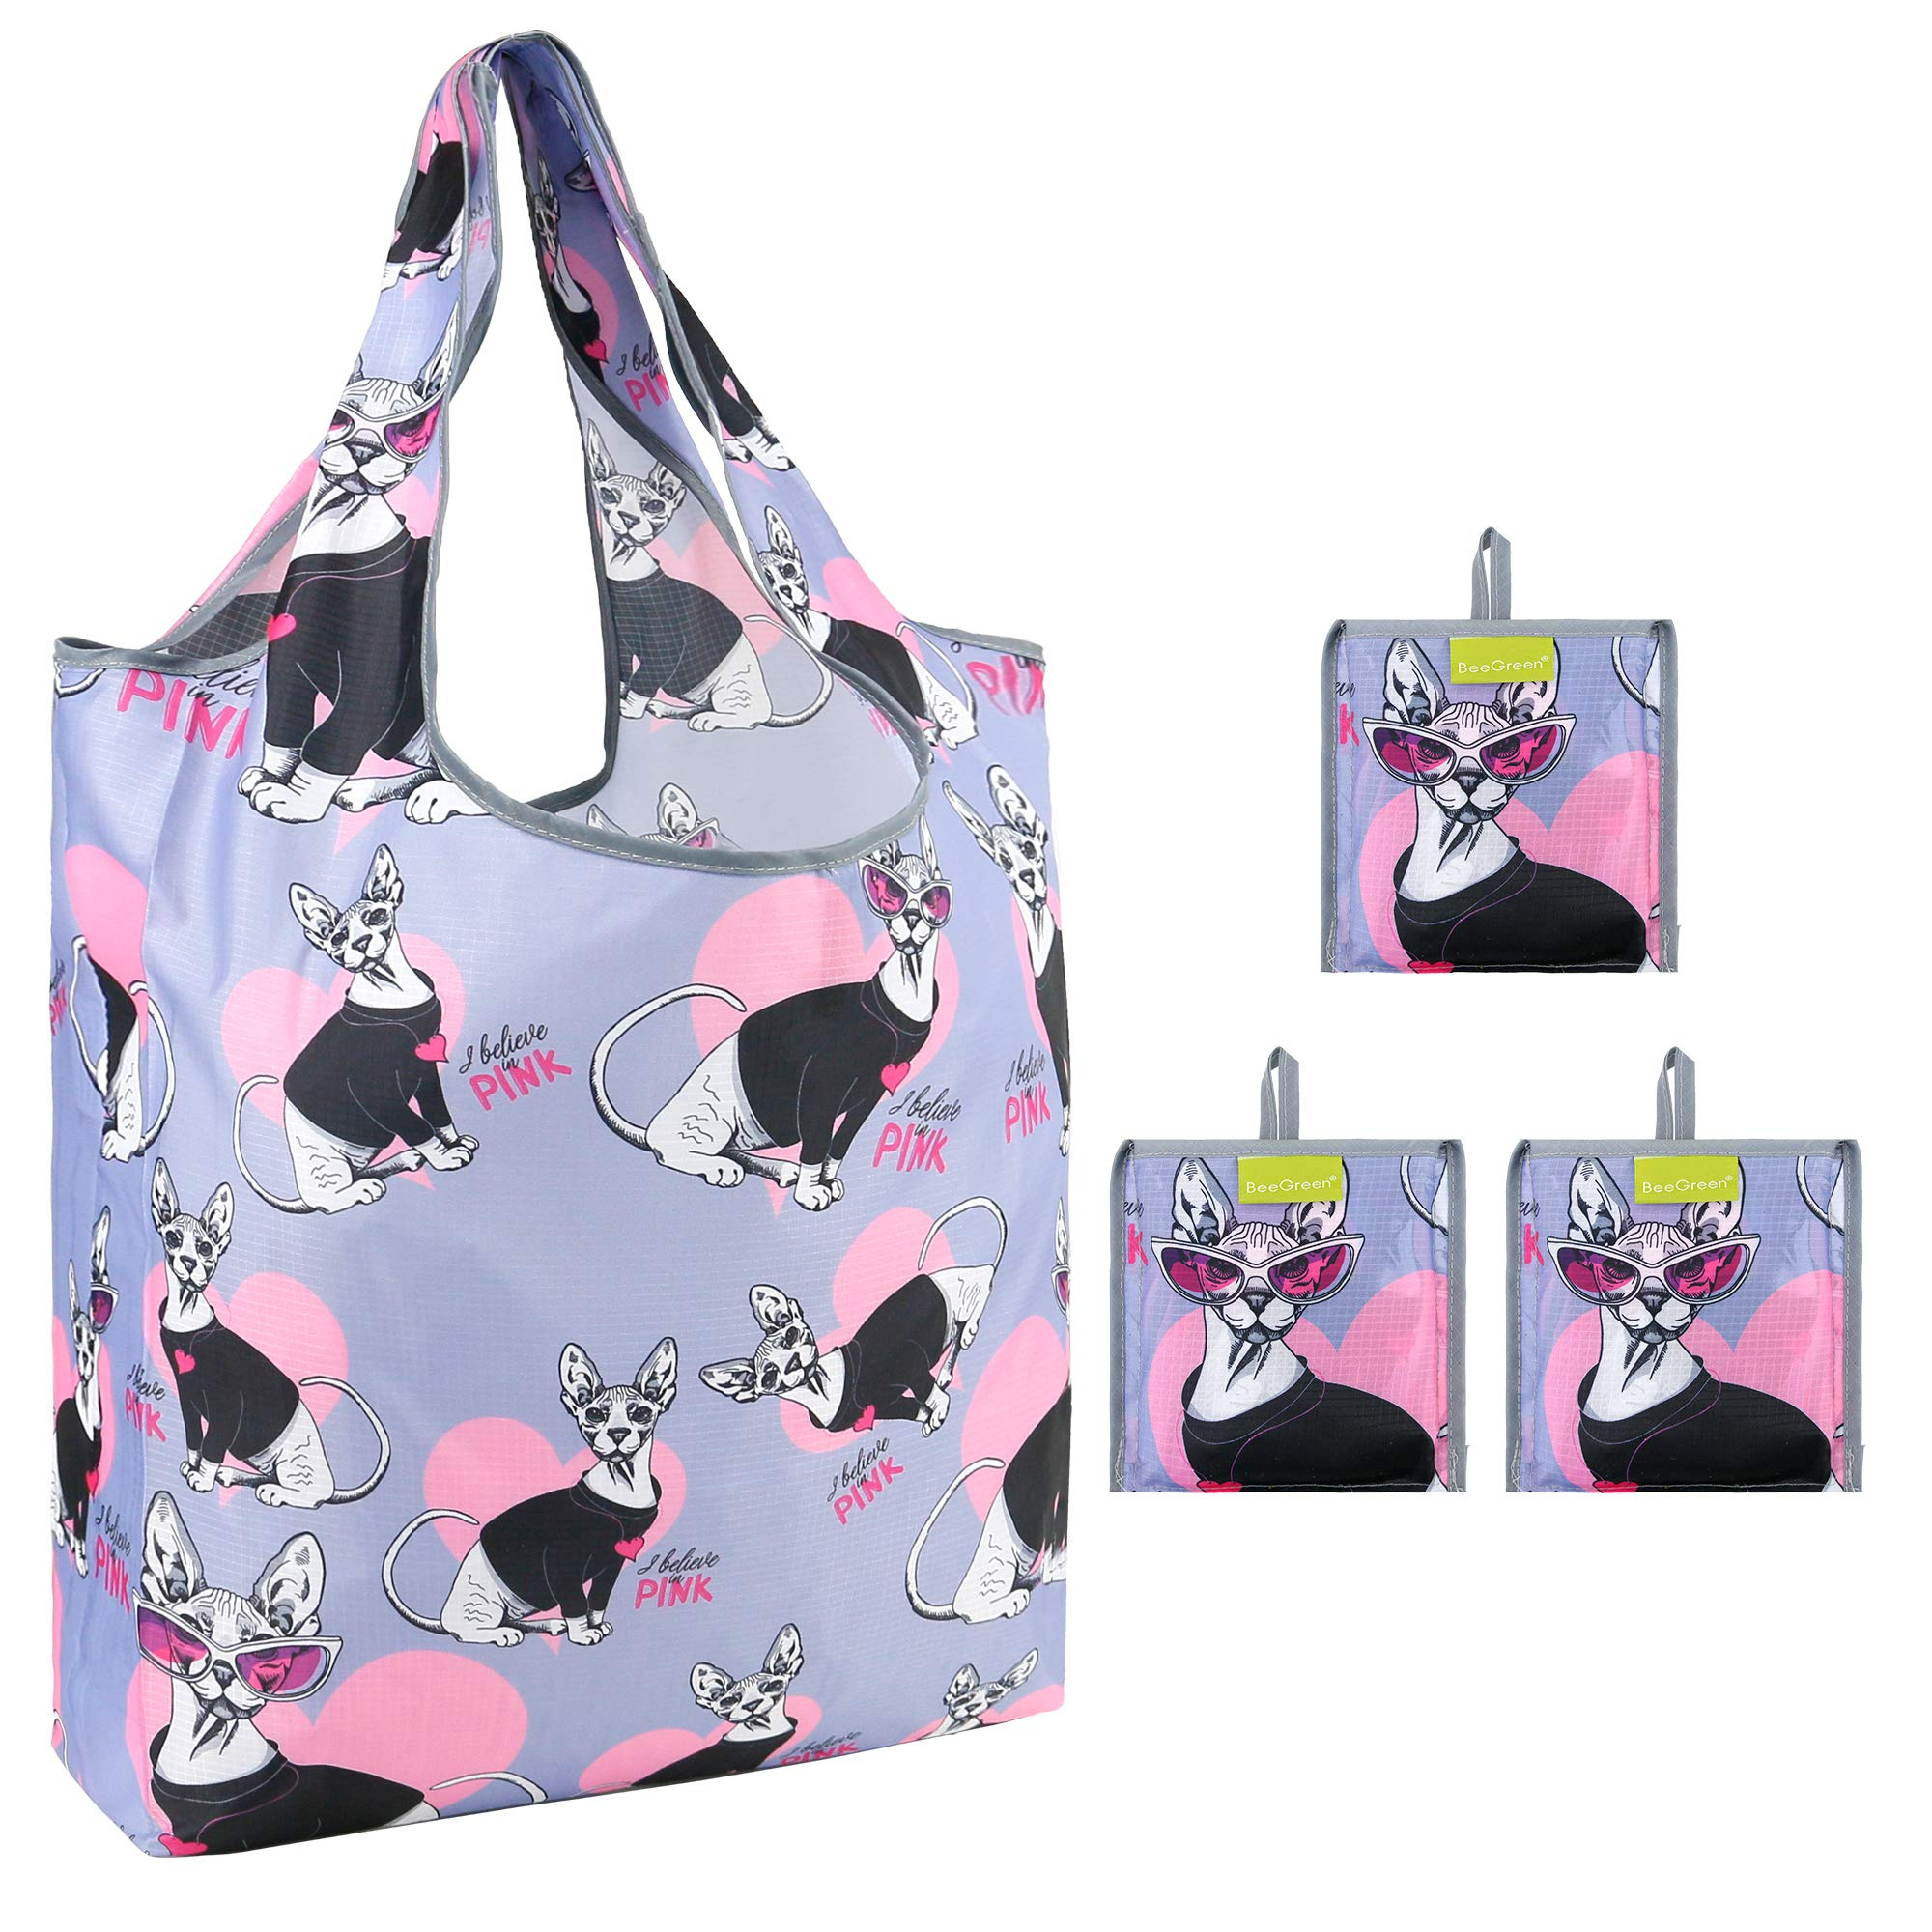 BLACK CAT FOLD UP SHOPPING BAG WITH HOLDER REUSABLE ECO FRIENDLY